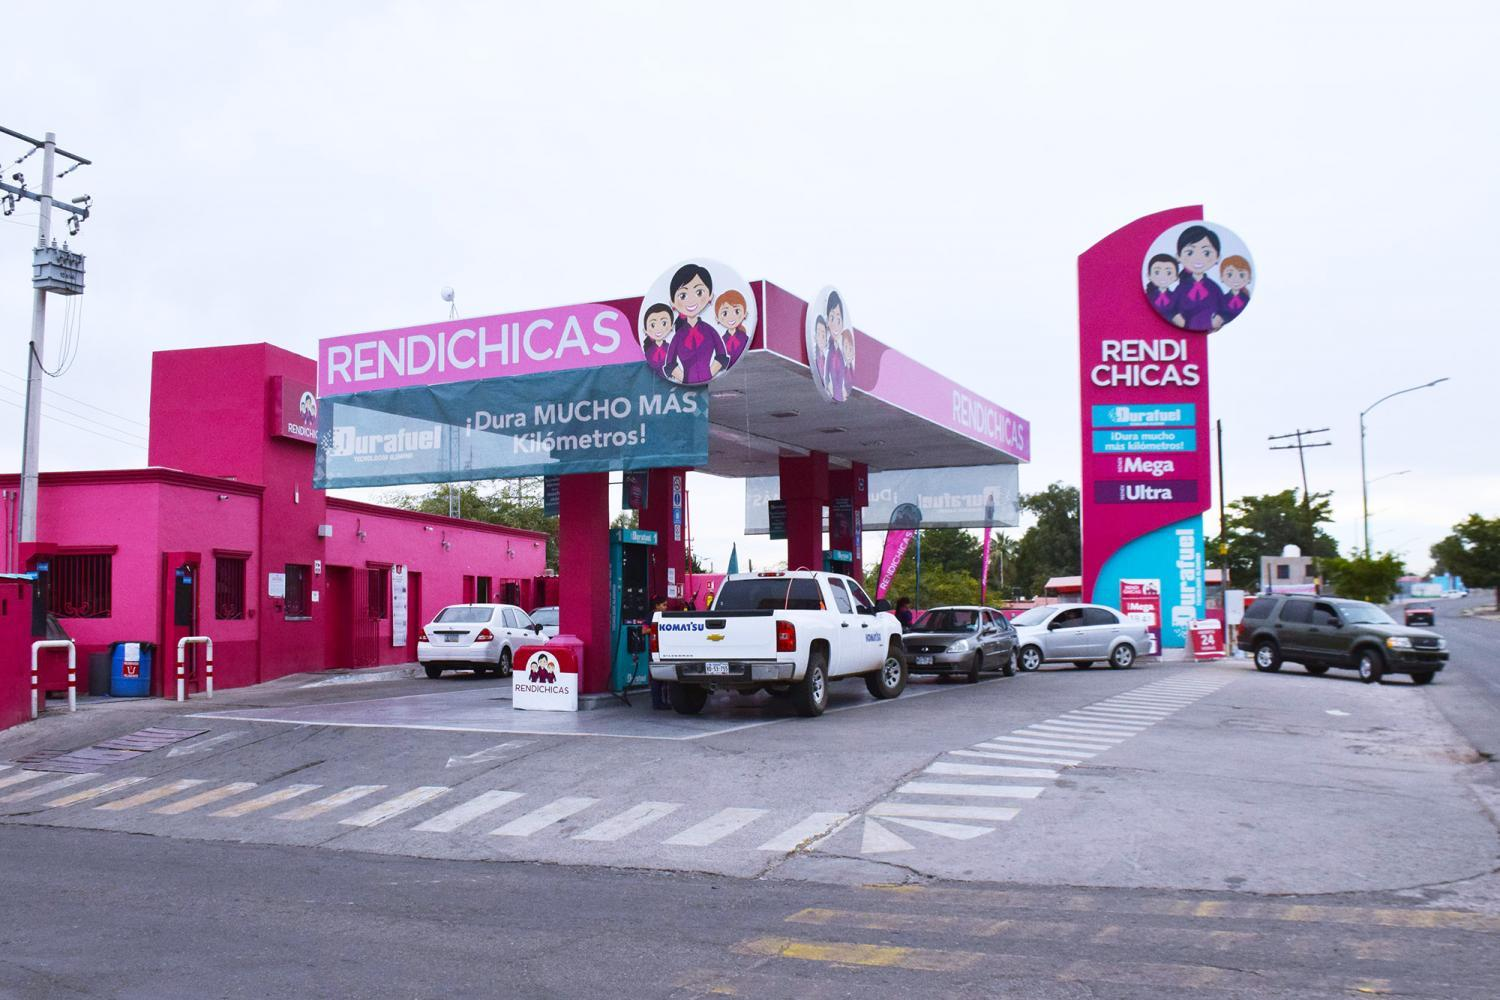 RendiChicas gas station Hermosillo